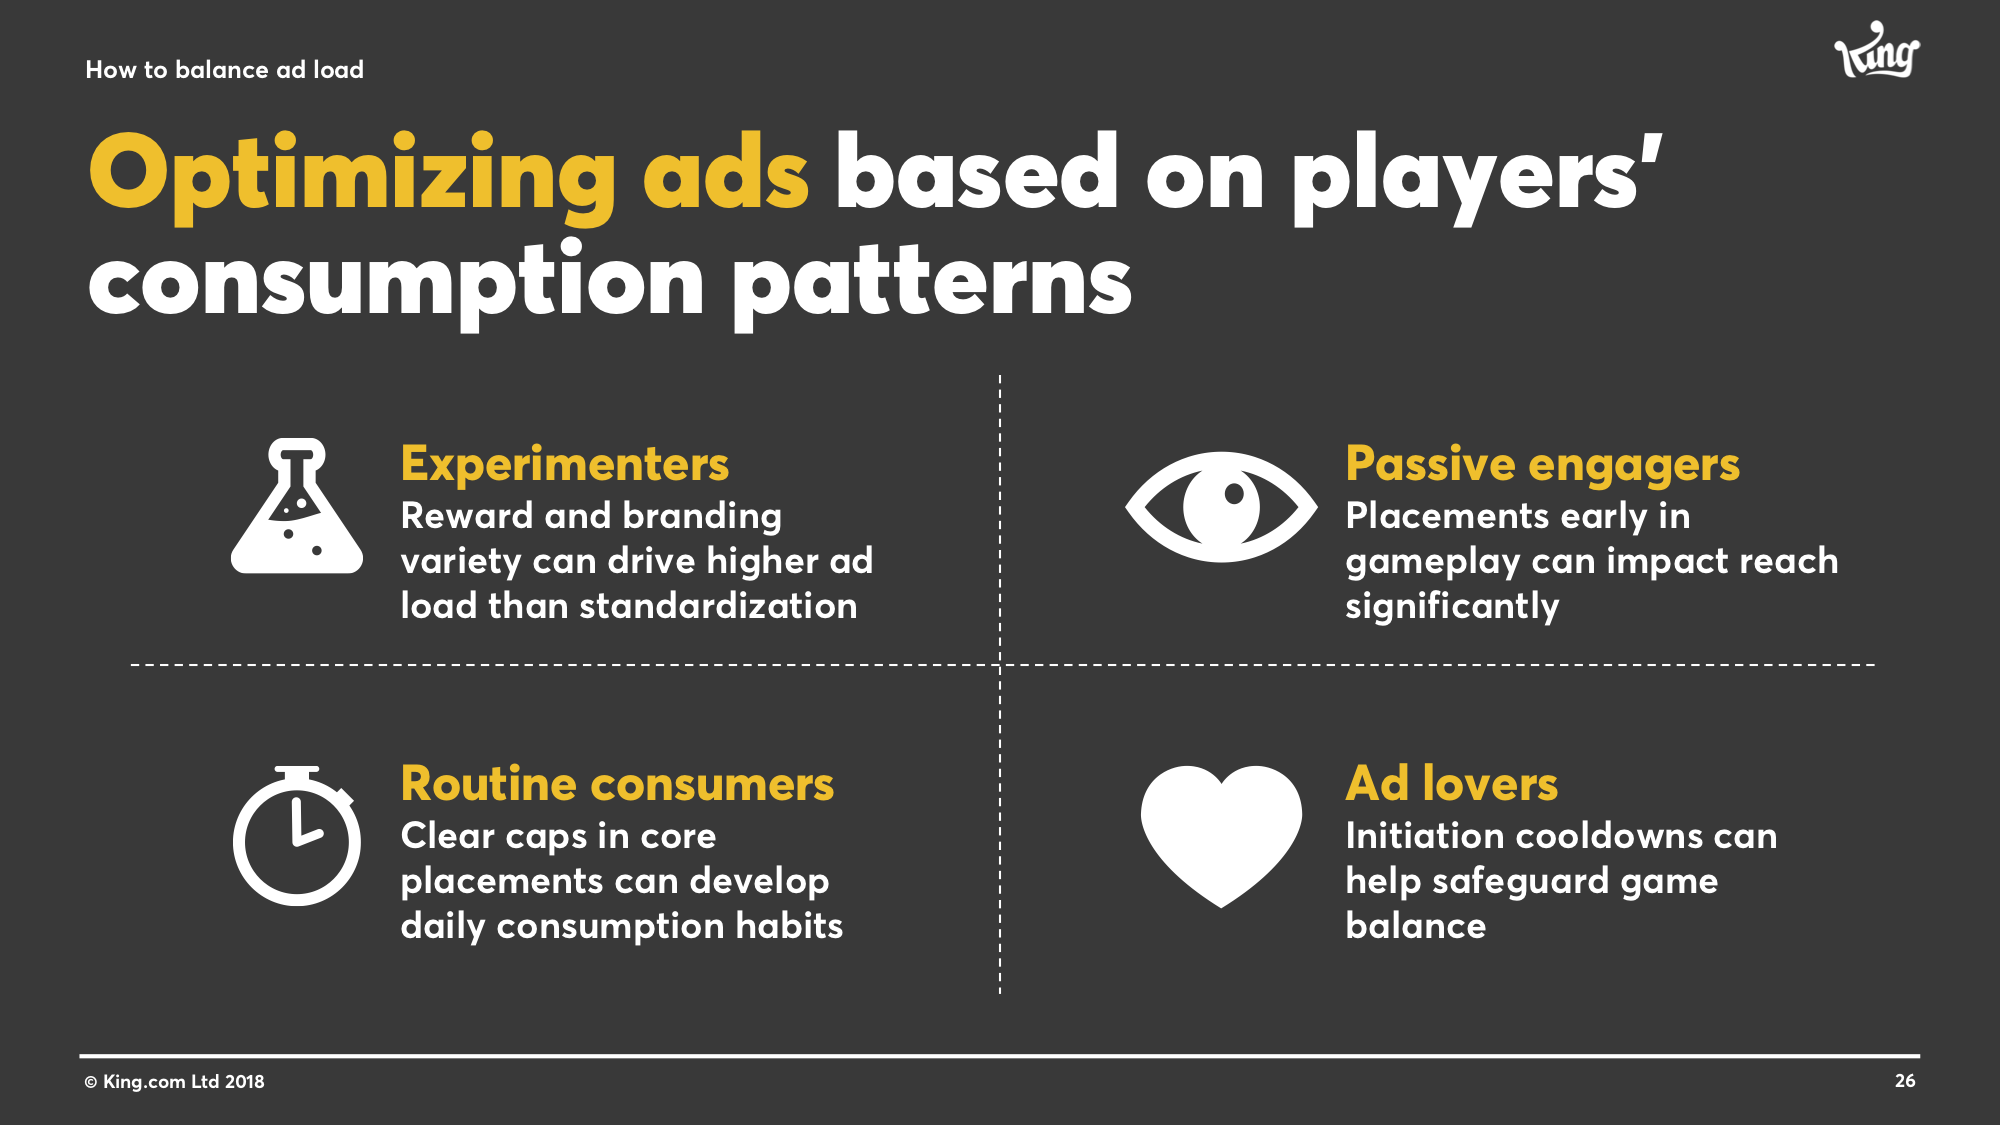 King MMA rewarded video optimizing ads based on players consumption patterns